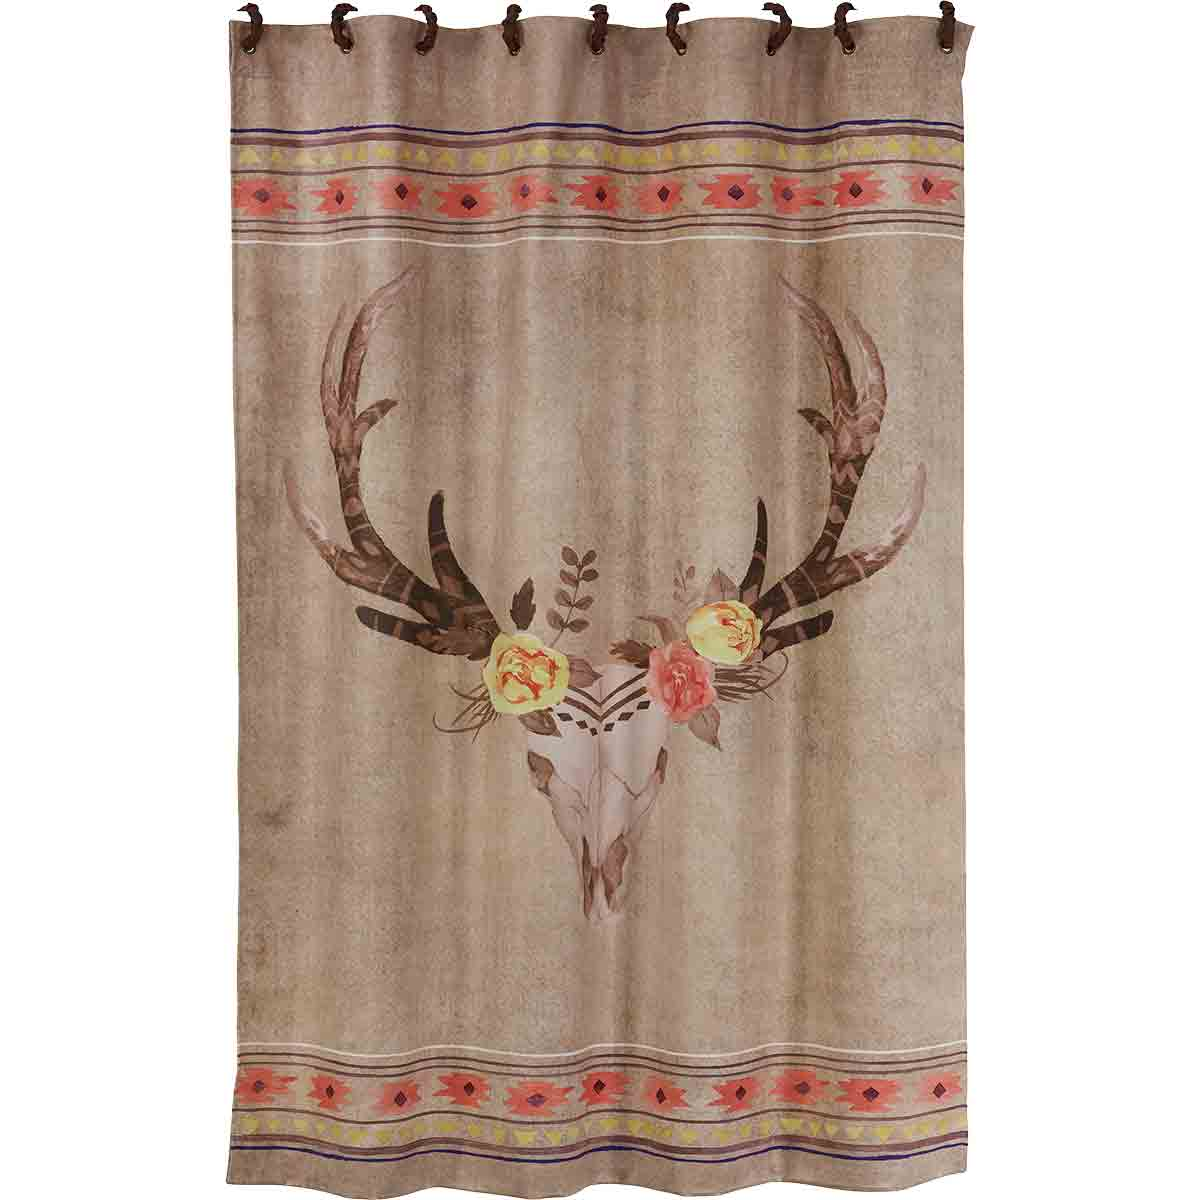 Skull with Flowers Shower Curtain